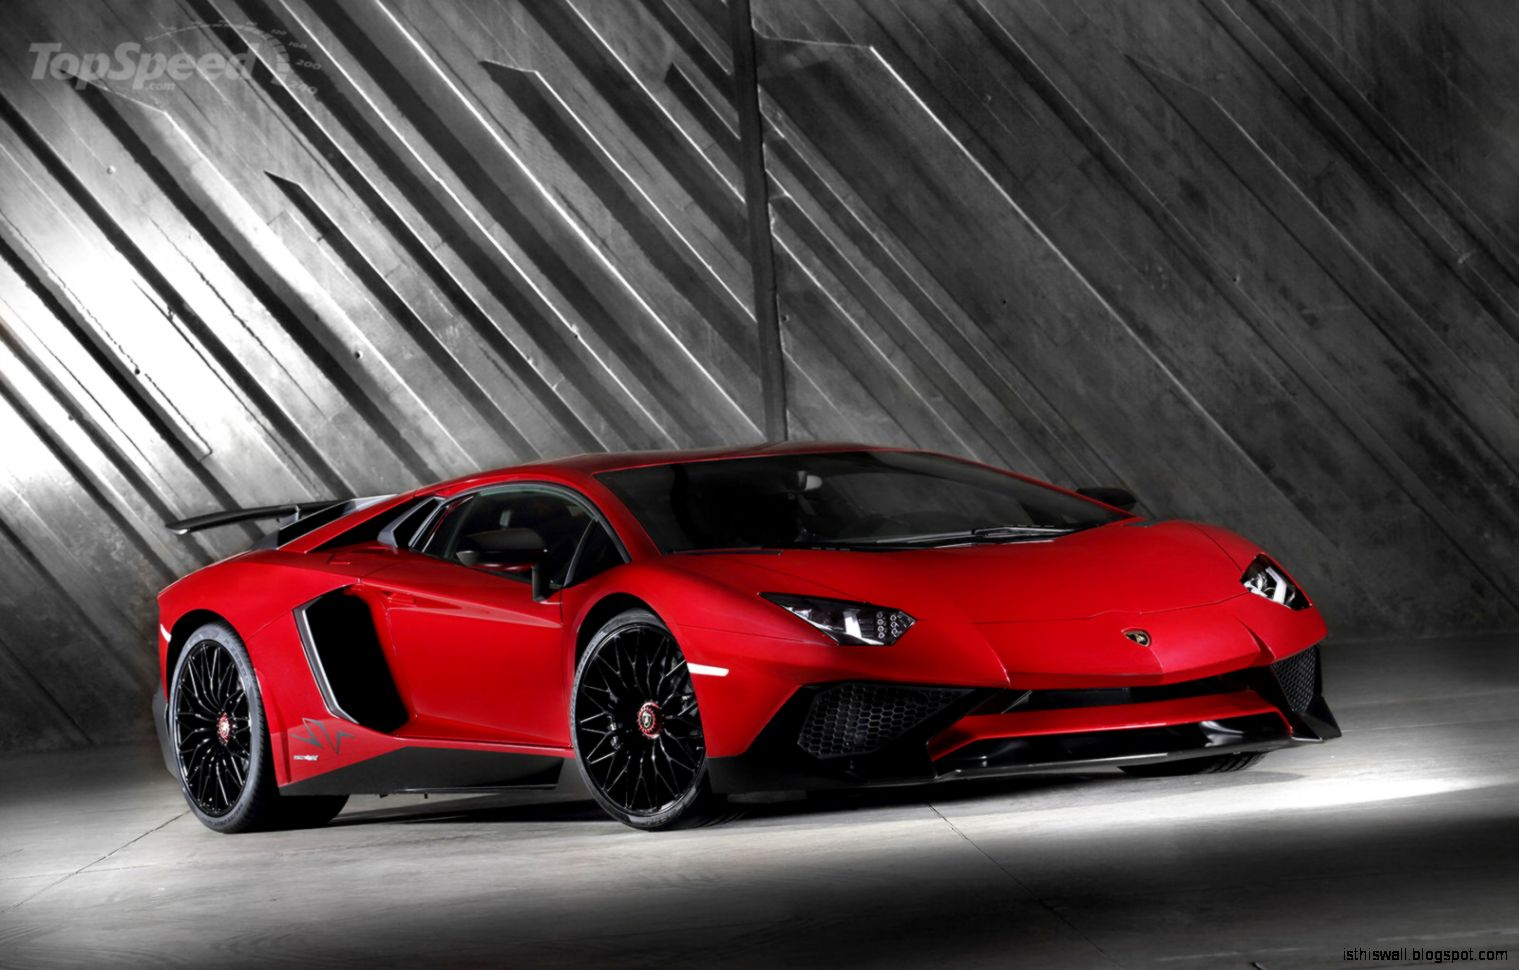 2015 Lamborghini Aventador Superveloce  car review  Top Speed